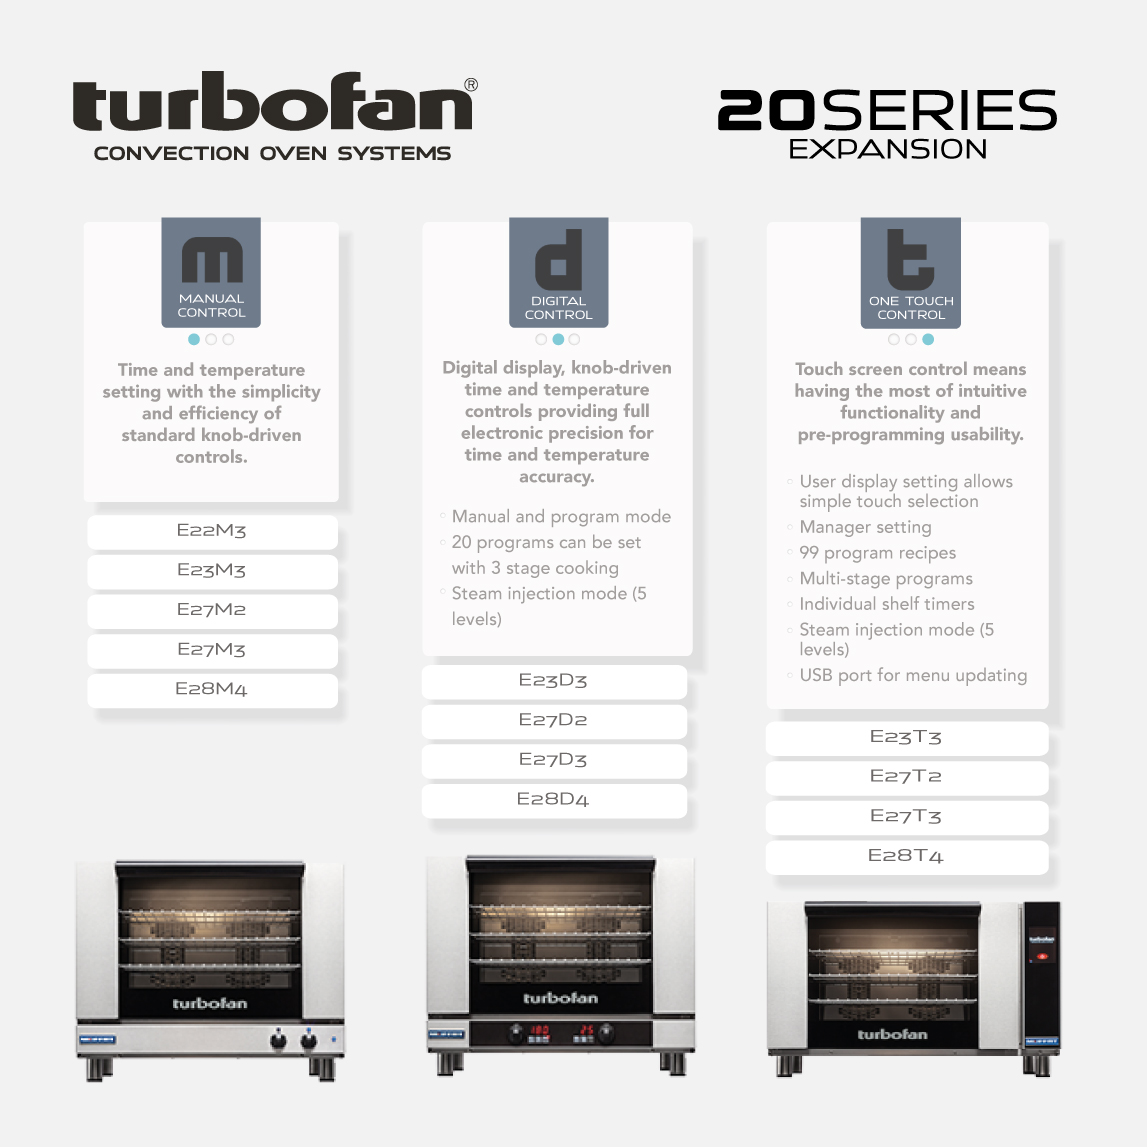 Turbofan infographic